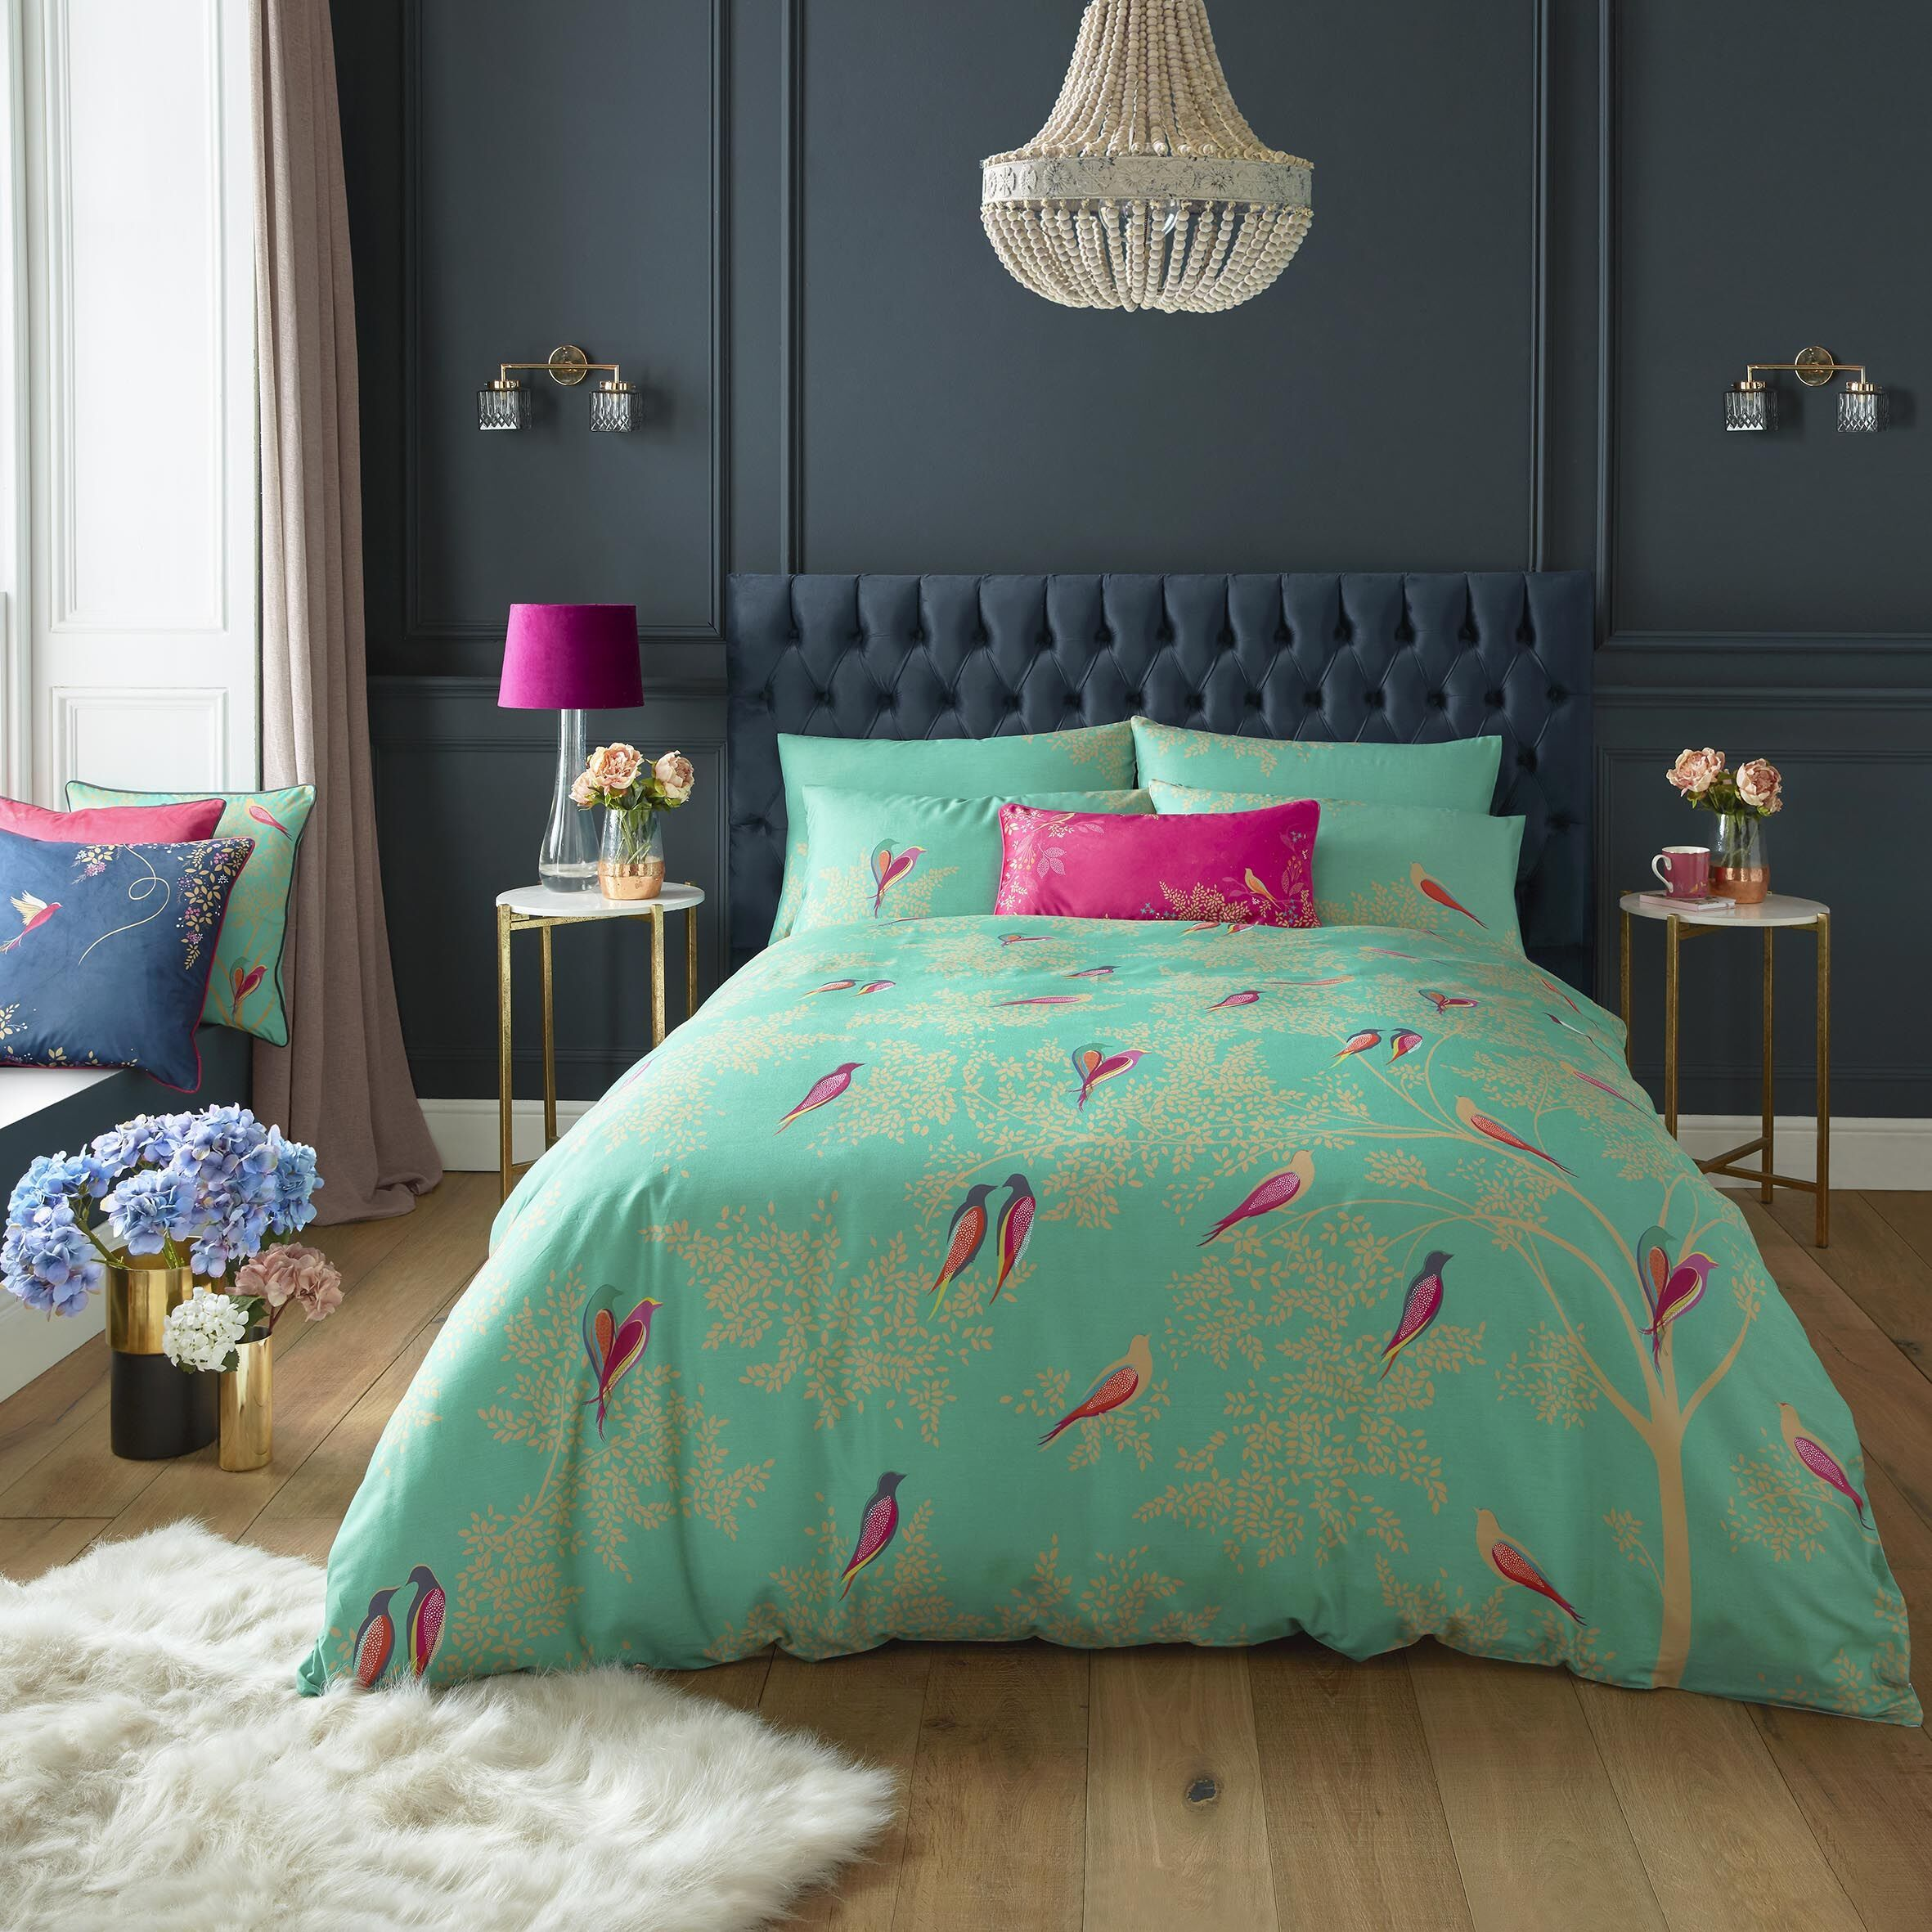 Green Birds Luxury Cotton Bed Linen Set By Sara Miller In 2020